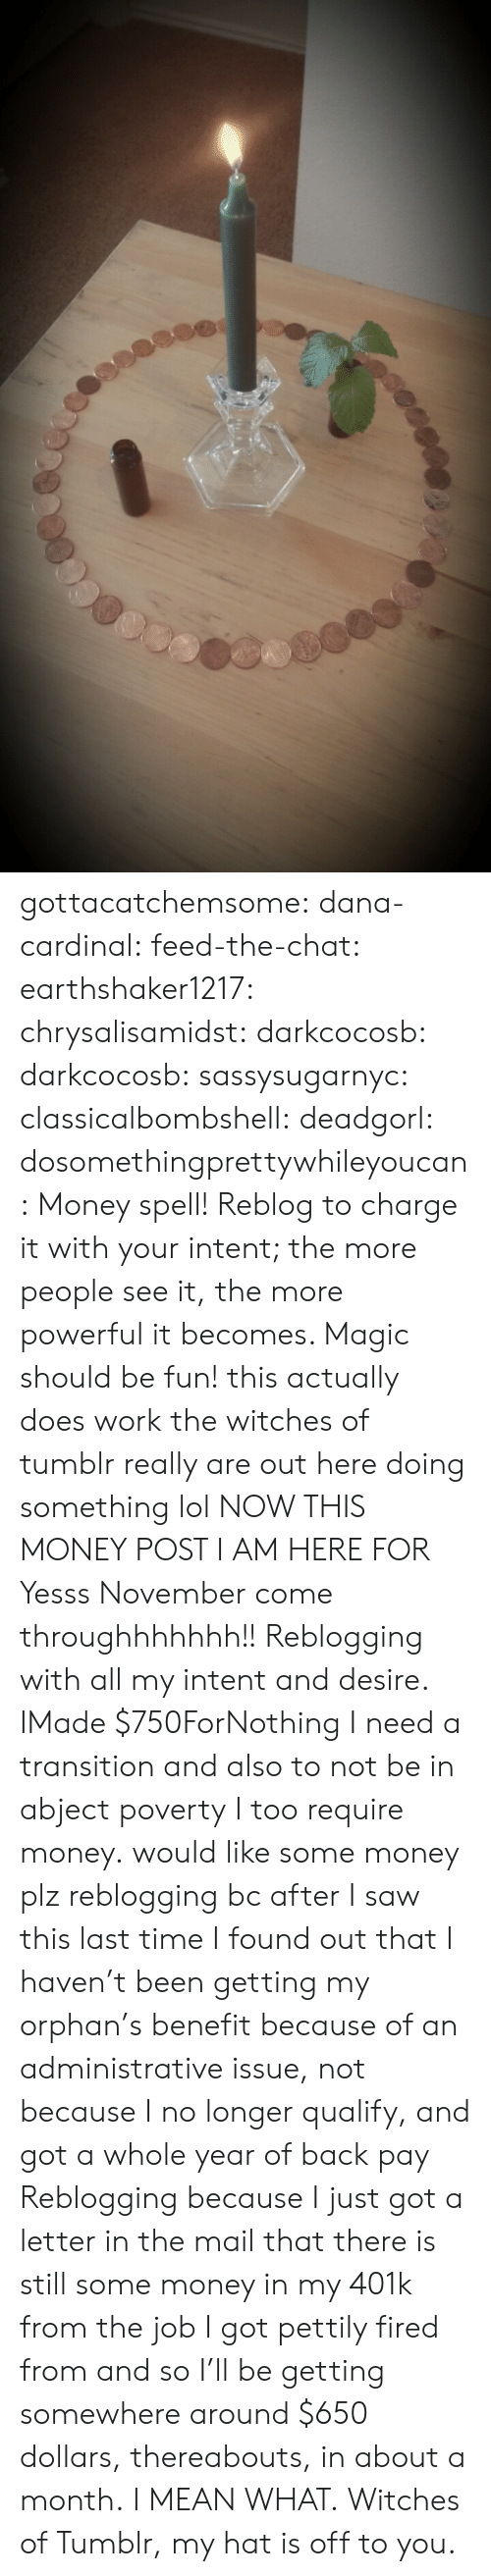 Lol, Money, and Saw: gottacatchemsome:  dana-cardinal:  feed-the-chat:  earthshaker1217:  chrysalisamidst:  darkcocosb:  darkcocosb:  sassysugarnyc:  classicalbombshell:  deadgorl:  dosomethingprettywhileyoucan:  Money spell! Reblog to charge it with your intent; the more people see it, the more powerful it becomes. Magic should be fun!  this actually does work the witches of tumblr really are out here doing something lol  NOW THIS MONEY POST I AM HERE FOR  Yesss November come throughhhhhhh!!  Reblogging with all my intent and desire.  IMade $750ForNothing  I need a transition and also to not be in abject poverty  I too require money.  would like some money plz  reblogging bc after I saw this last time I found out that I haven't been getting my orphan's benefit because of an administrative issue, not because I no longer qualify, and got a whole year of back pay  Reblogging because I just got a letter in the mail that there is still some money in my 401k from the job I got pettily fired from and so I'll be getting somewhere around $650 dollars, thereabouts, in about a month.I MEAN WHAT.Witches of Tumblr, my hat is off to you.